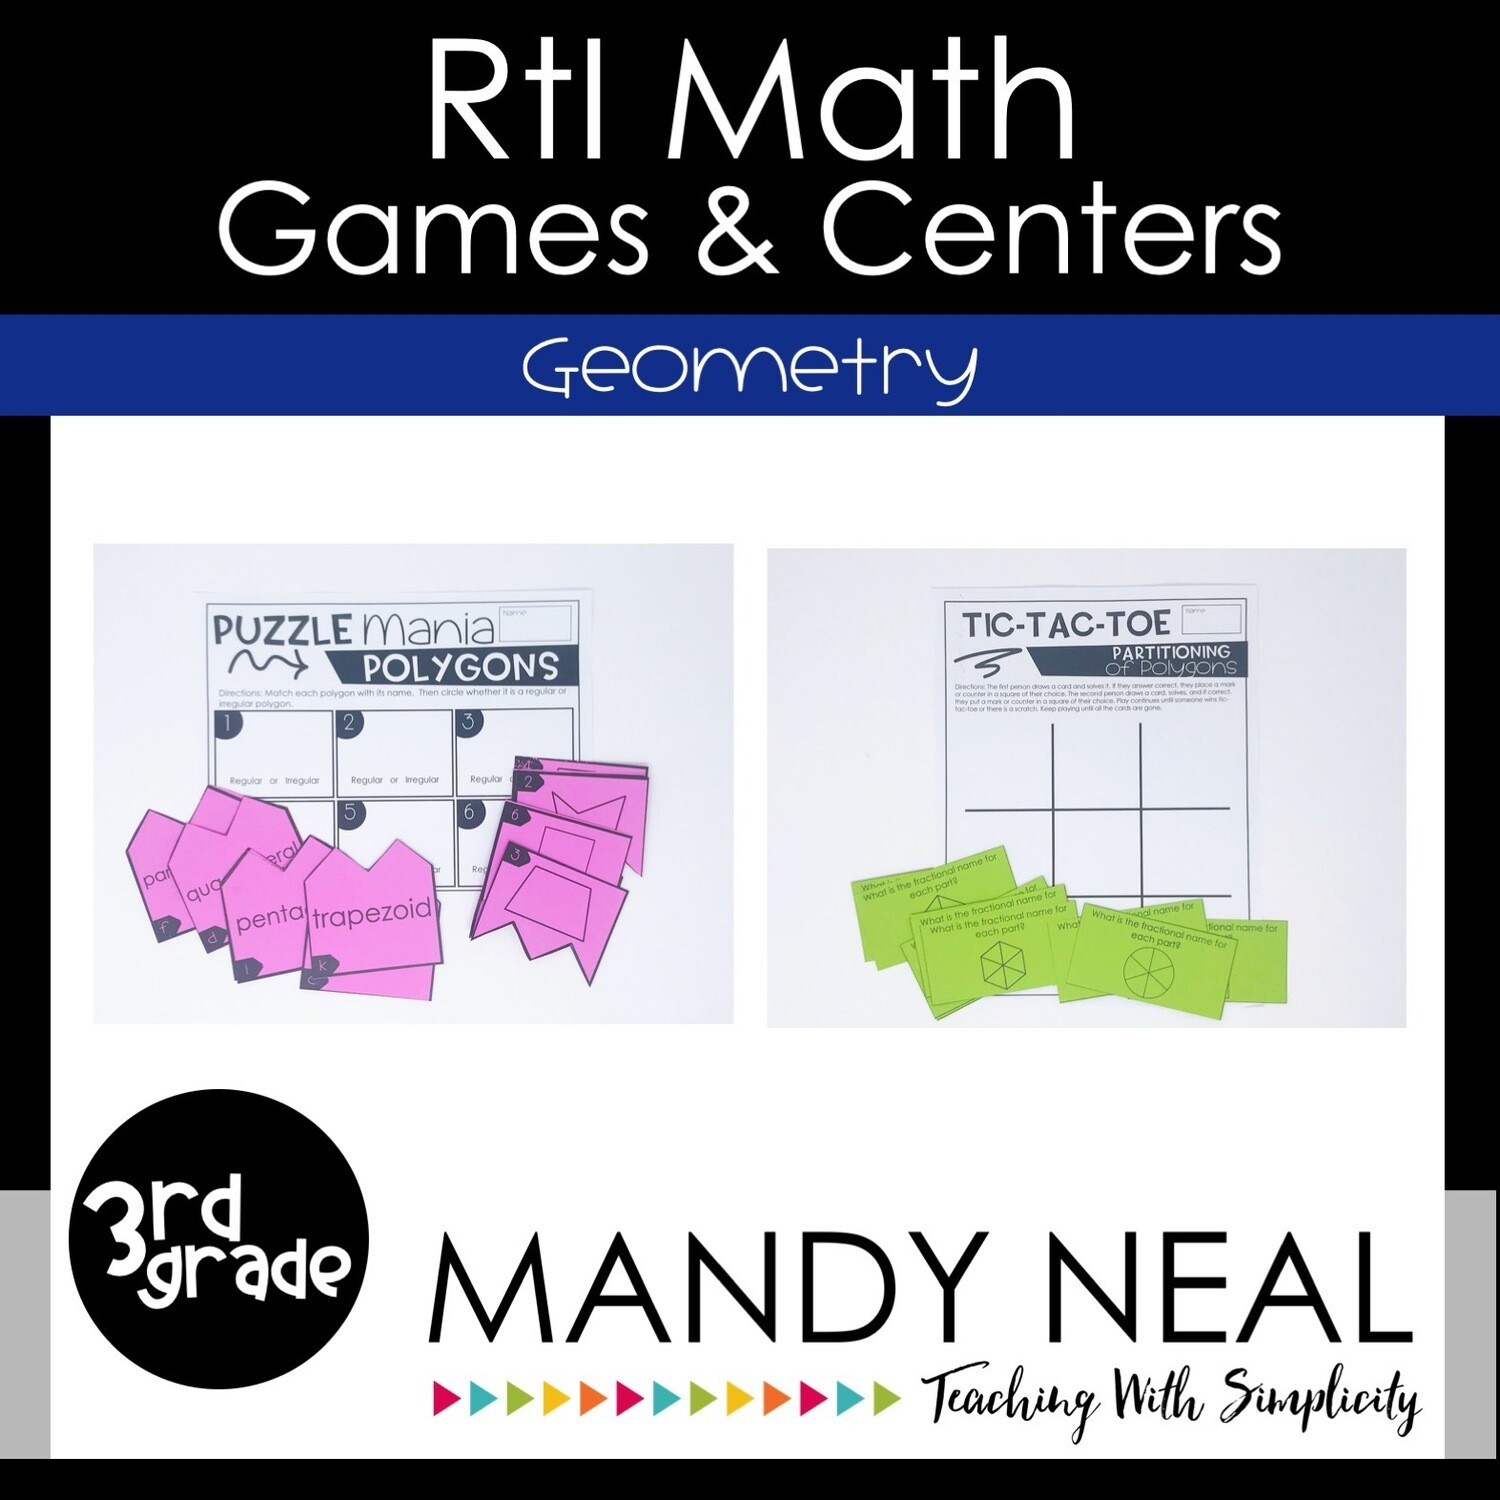 3rd Grade Math Intervention Games and Centers for Geometry